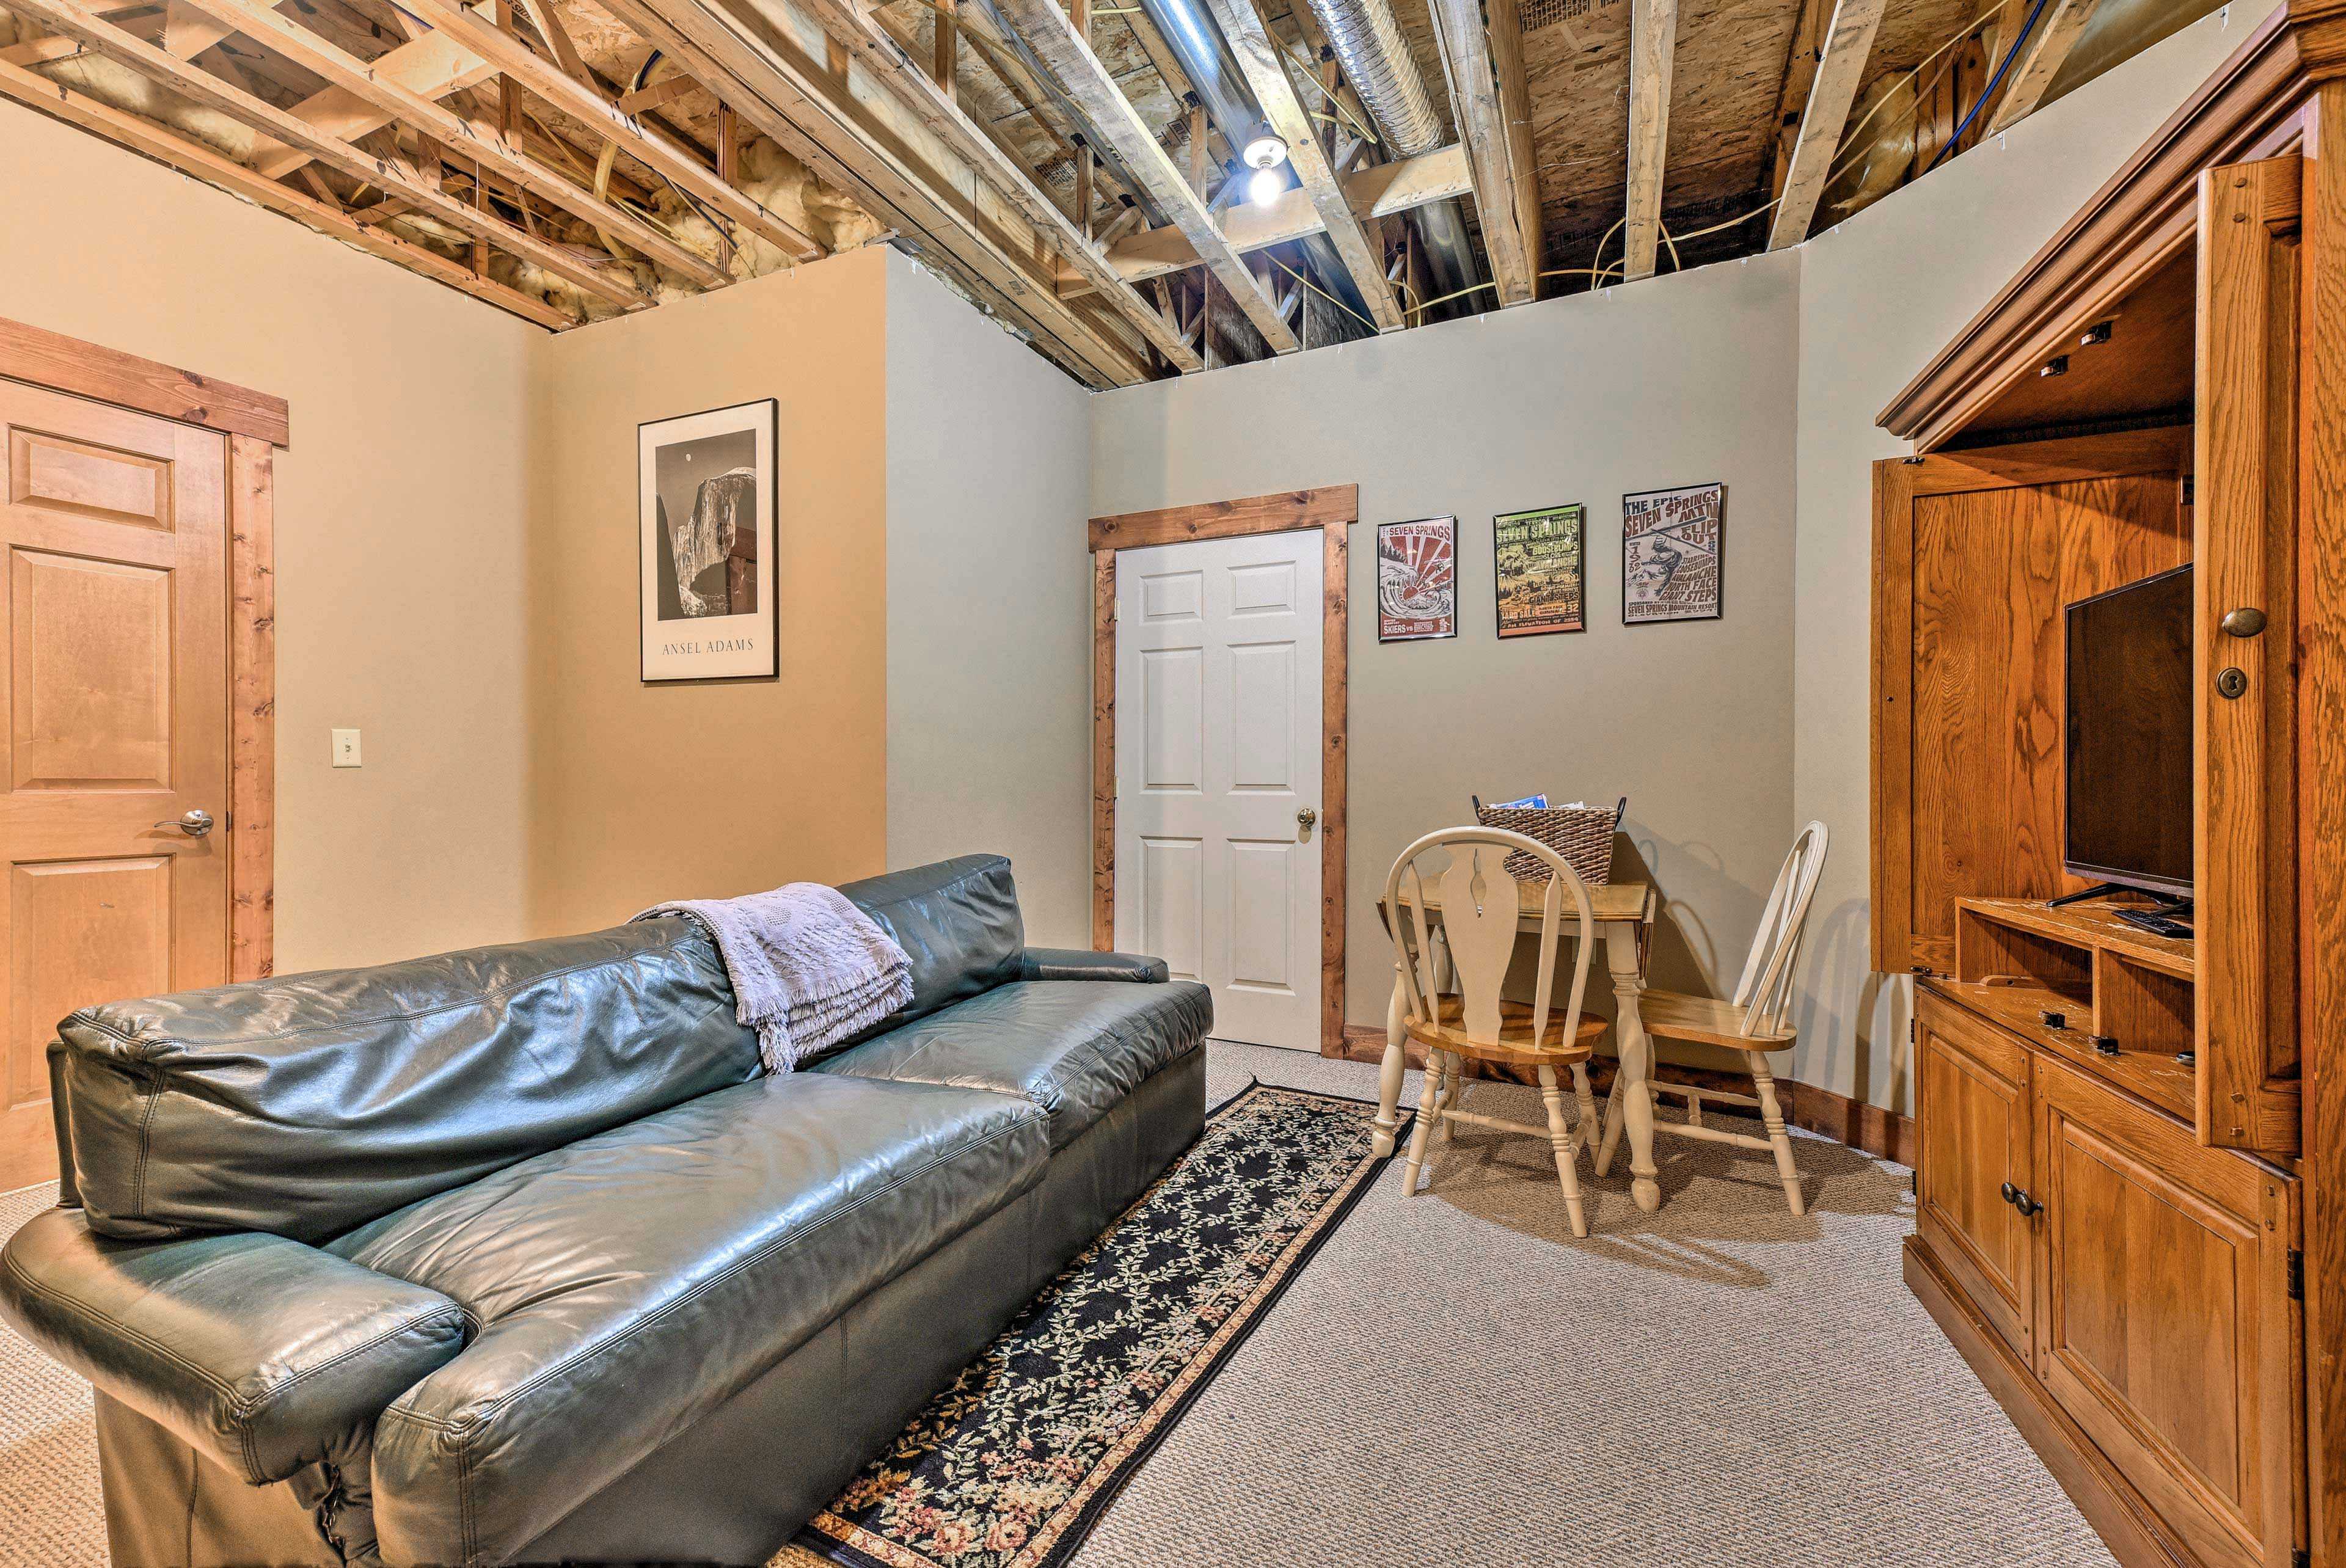 The basement is complete with a comfy couch, TV, and third bedroom.